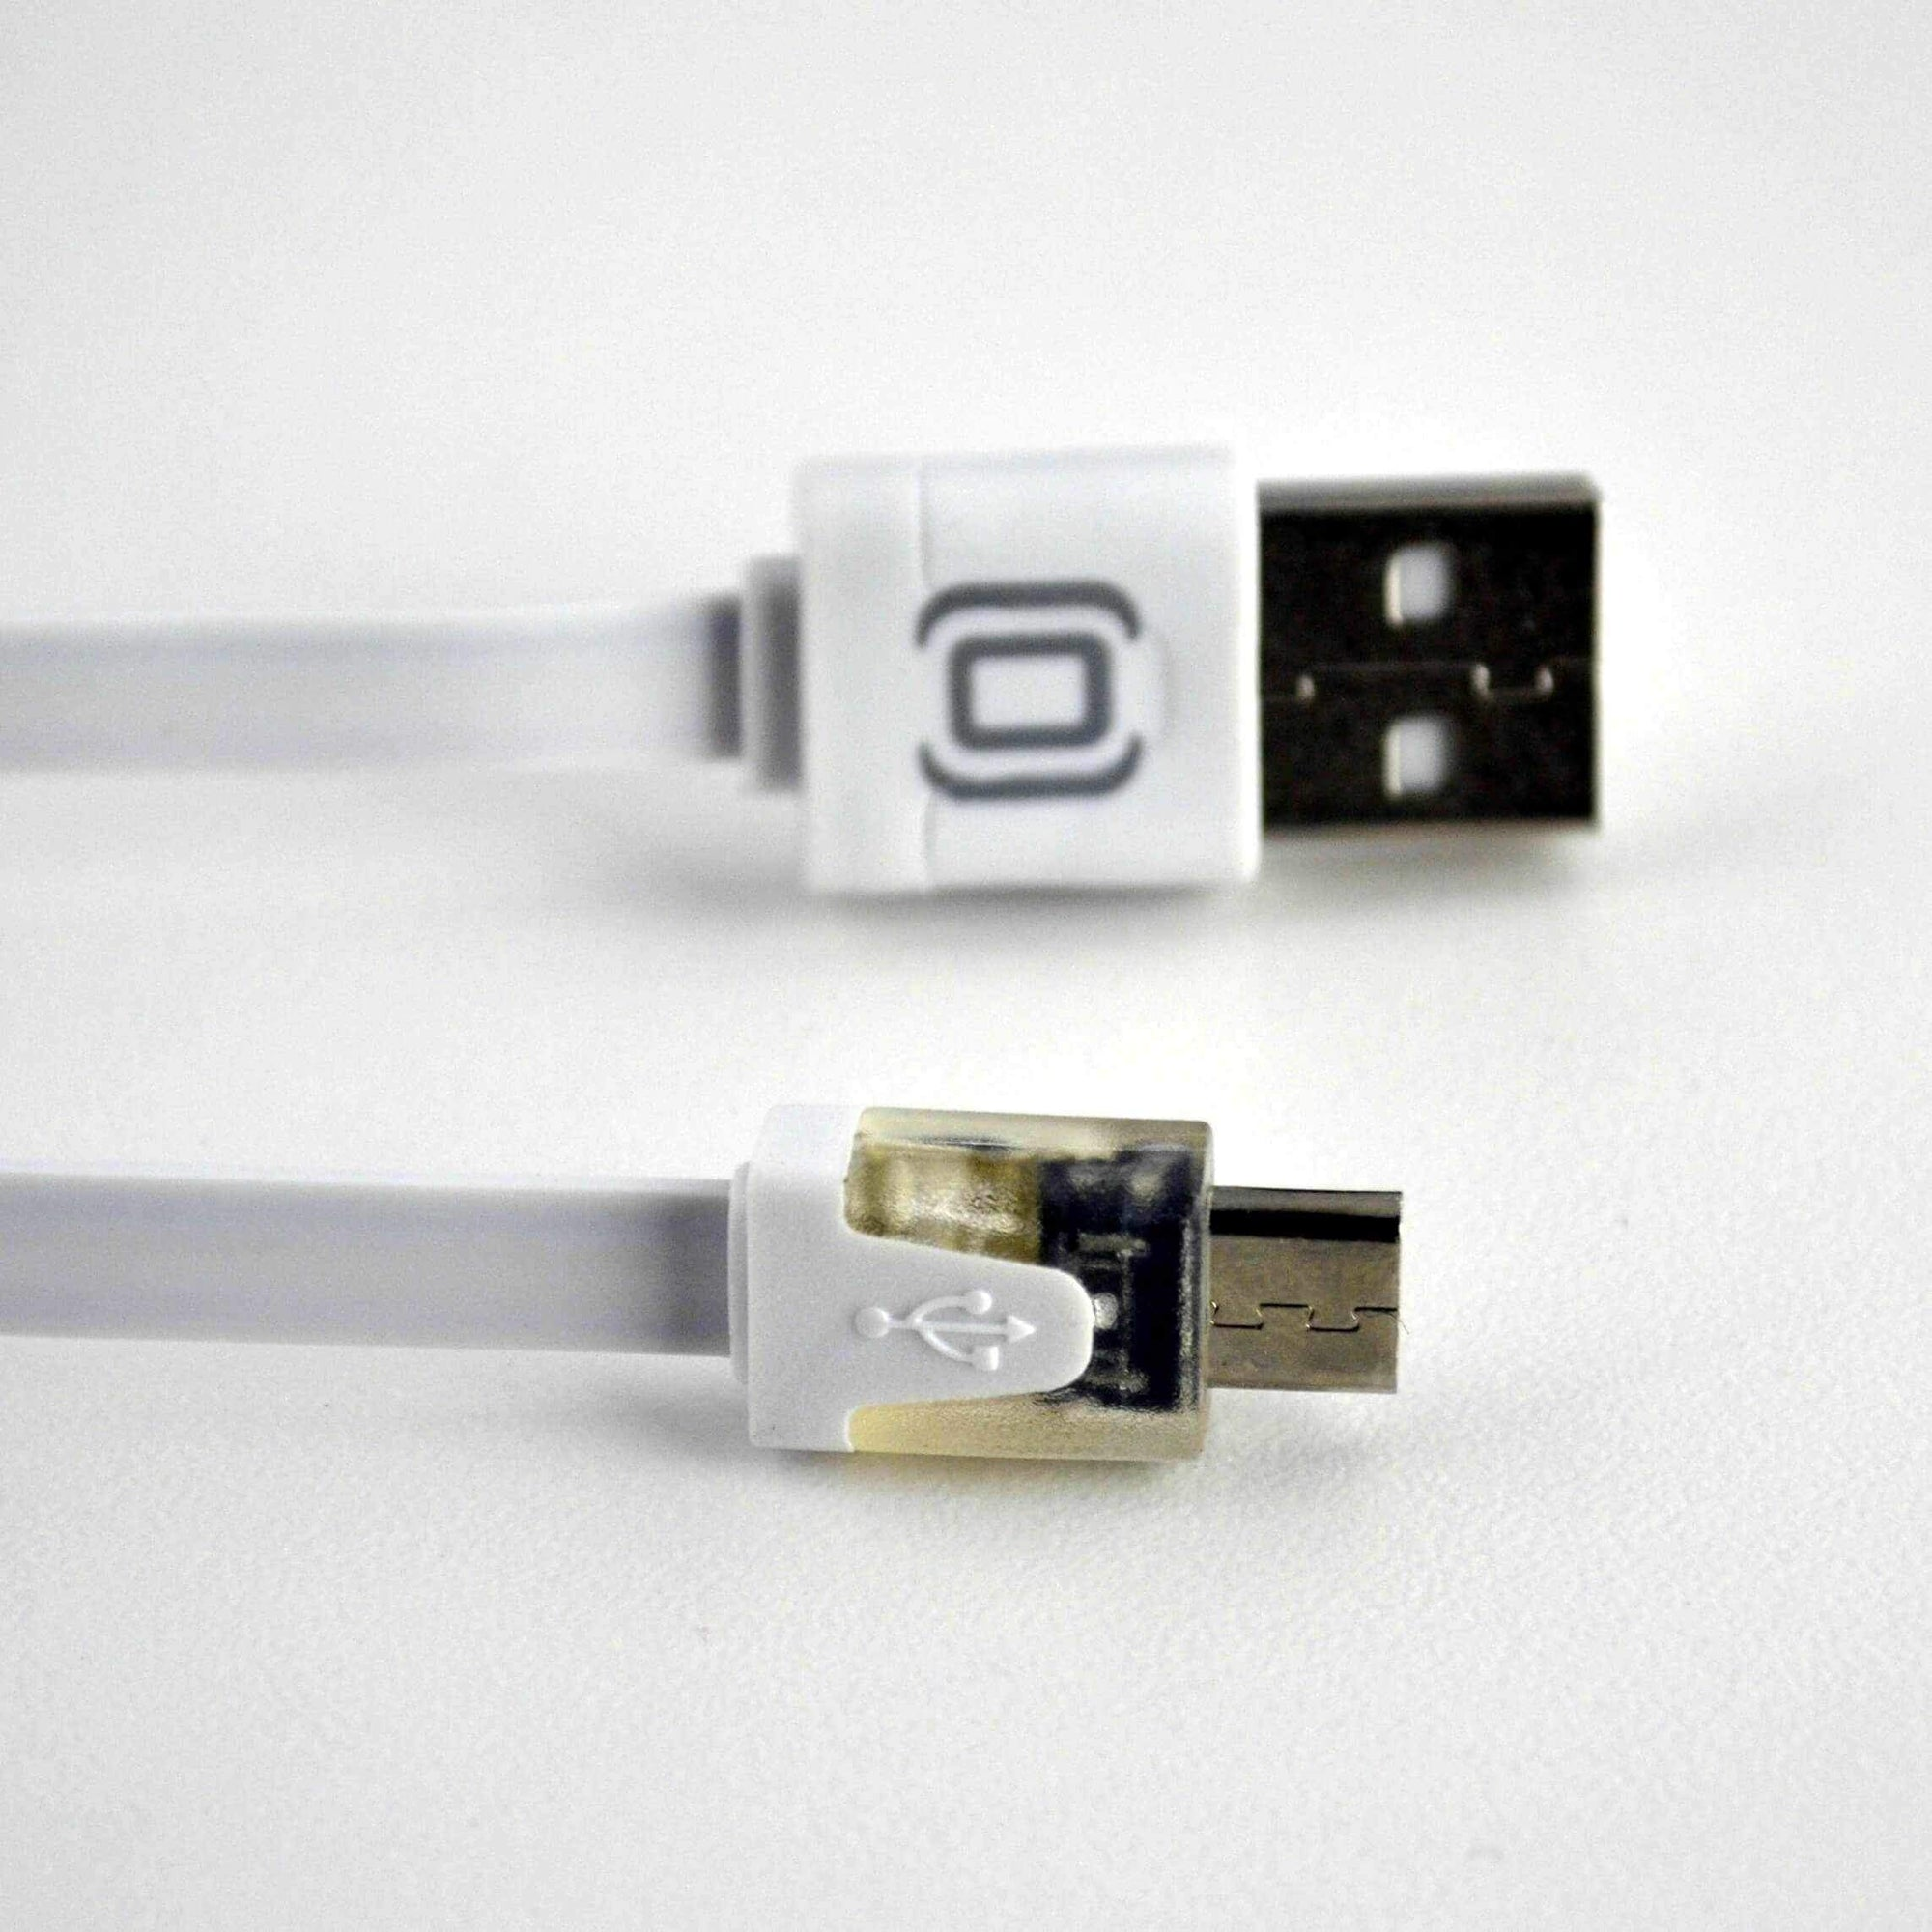 LED Light Up Micro USB Cable for Smartphones, Tablets, and other Electronics Accessories Charging Cable Dockem